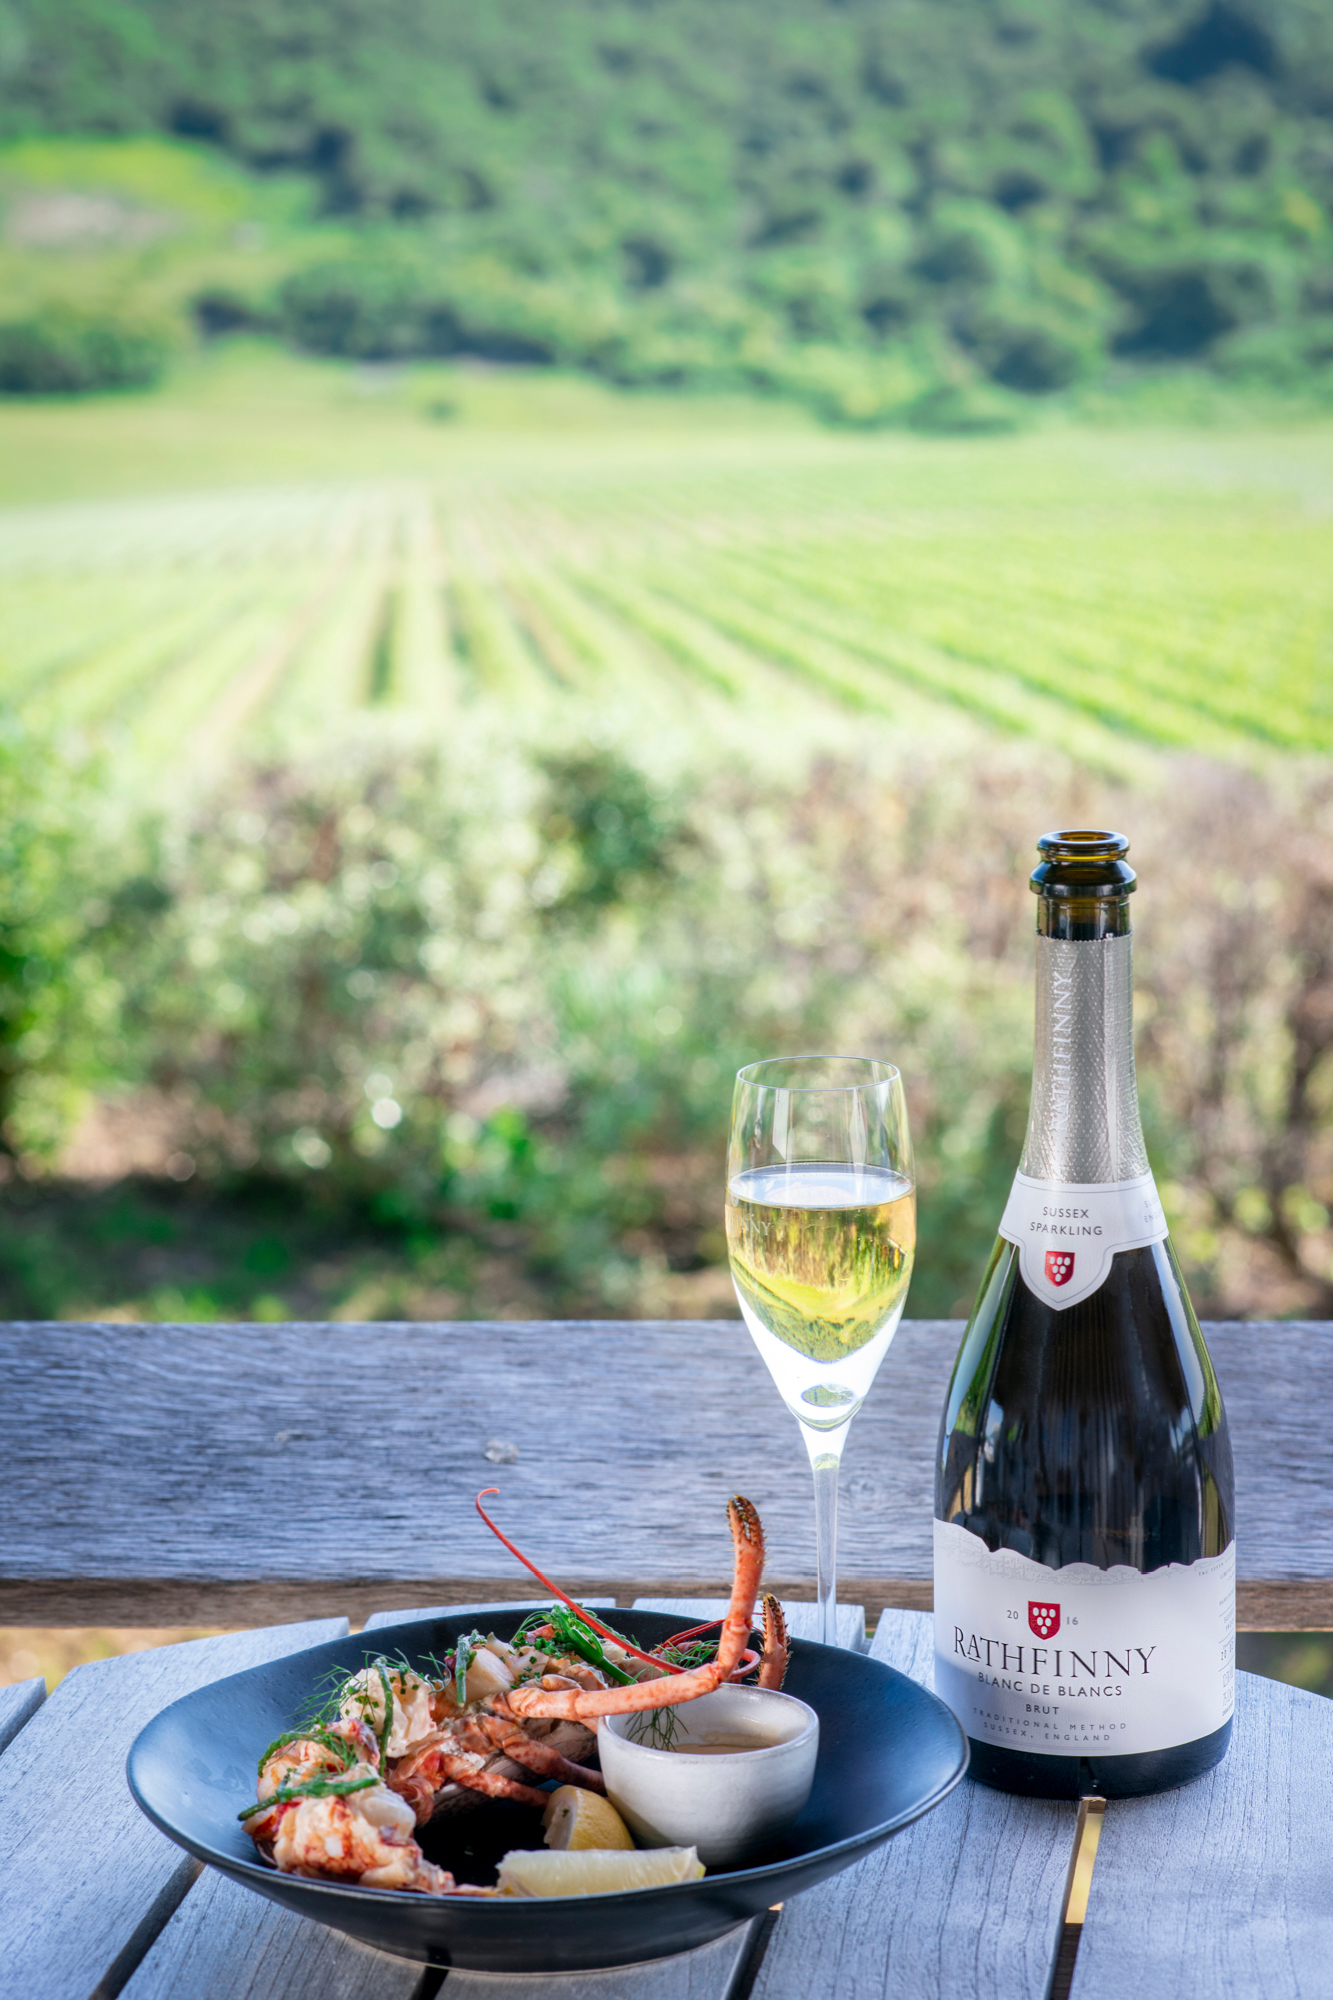 The Seafood Kitchen at Rathfinny offers takeaway to be enjoyed by the vines